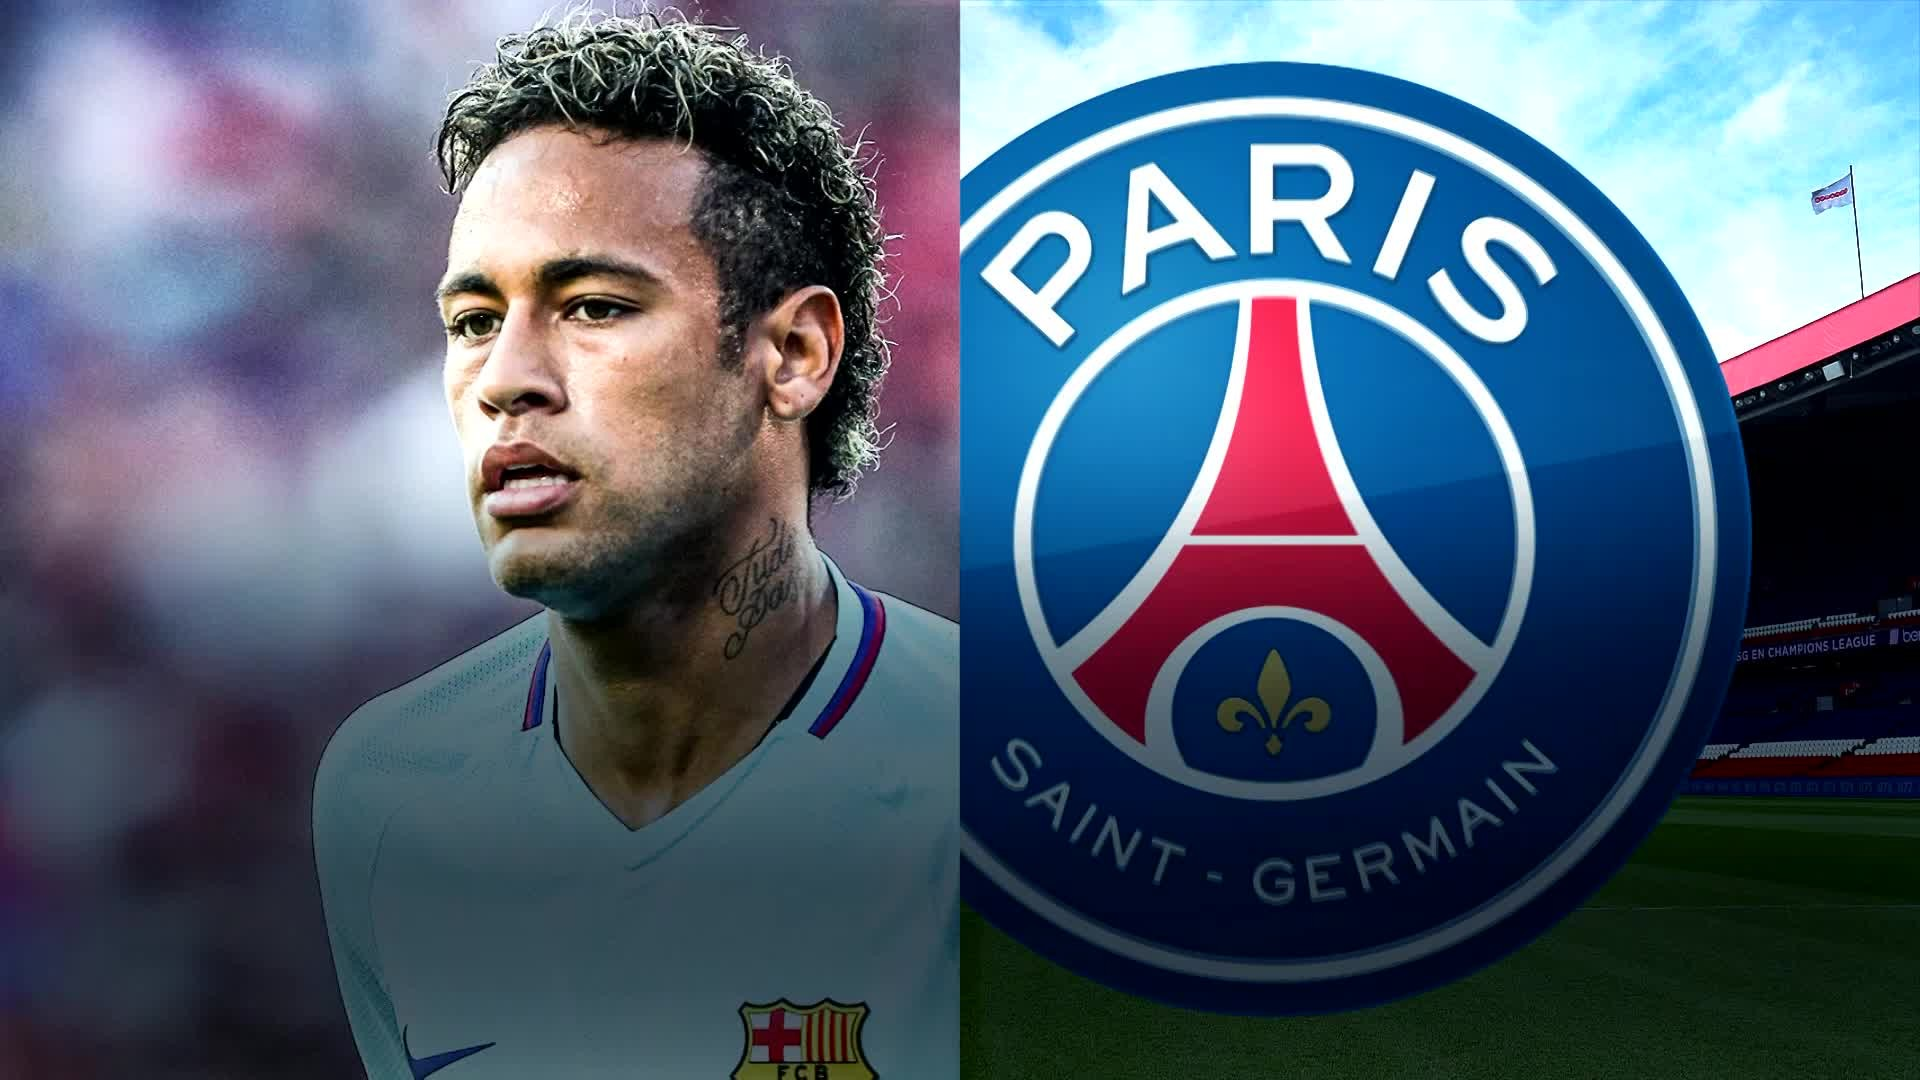 Image Result For Vivo Nantes Vs Psg En Vivo Download